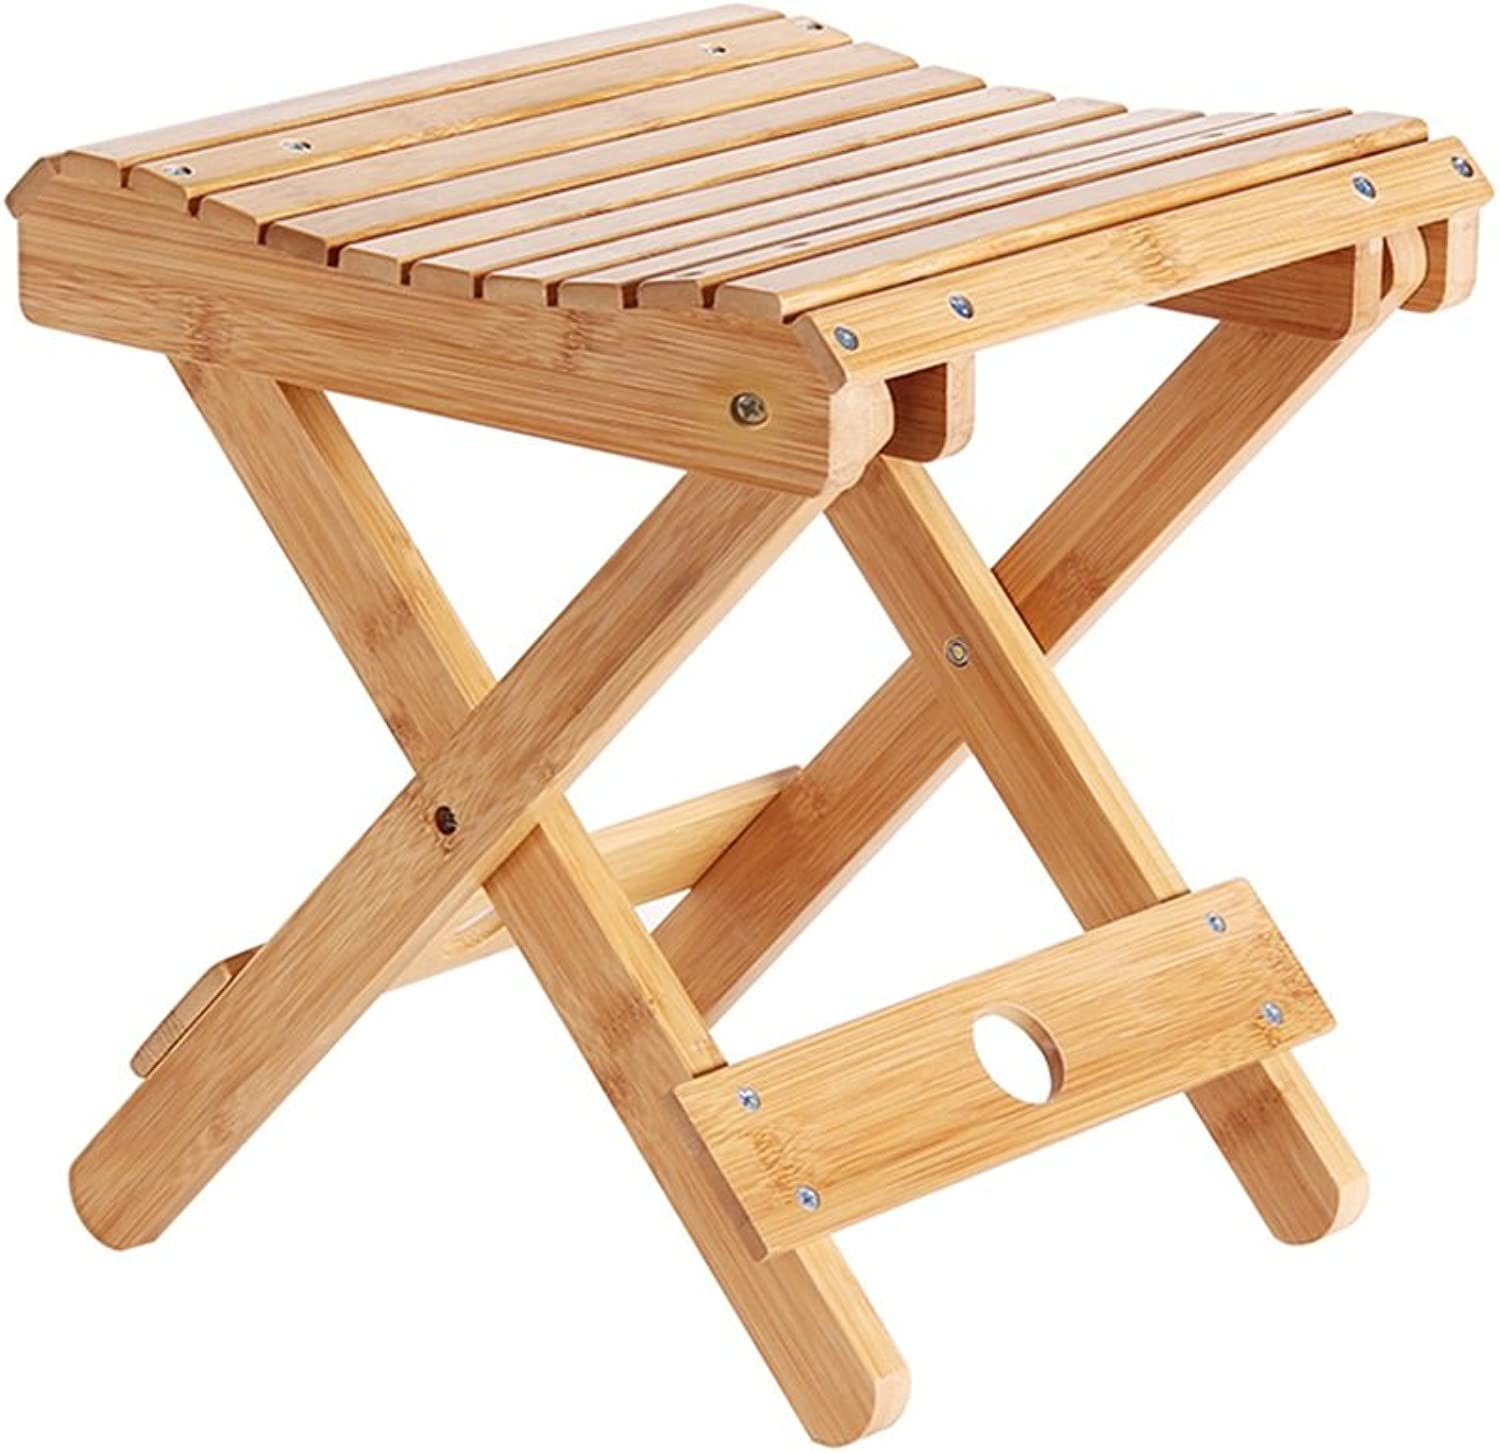 Folding Camping Stool Bamboo Fishing Breathable Square Step 2kg 4.4LBS (color   A)